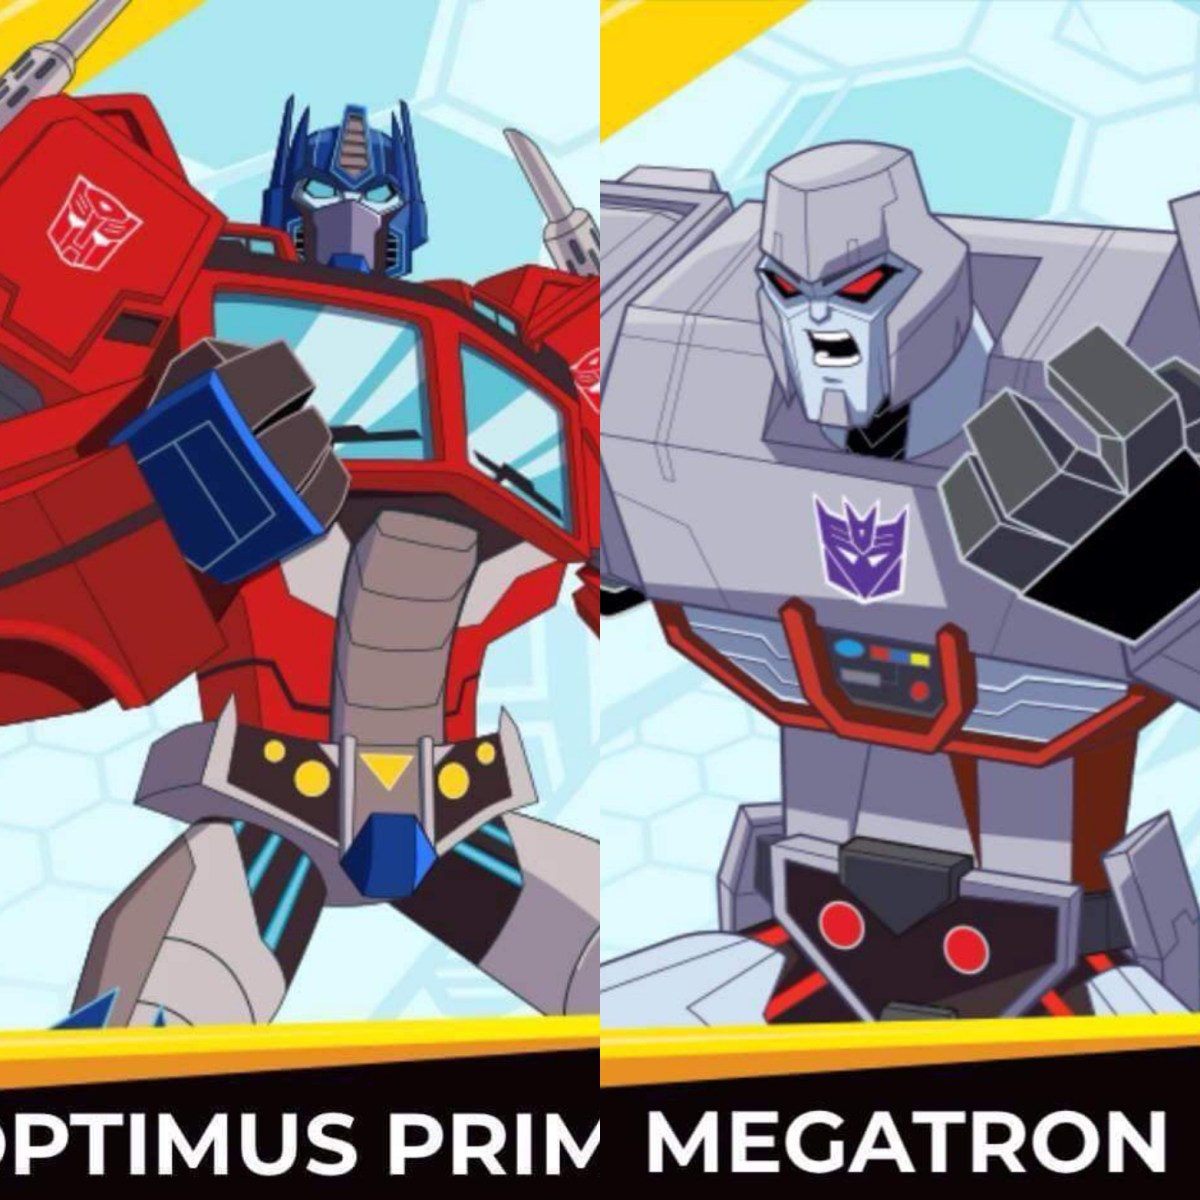 Transformers Cyberverse Character Designs Look Promising